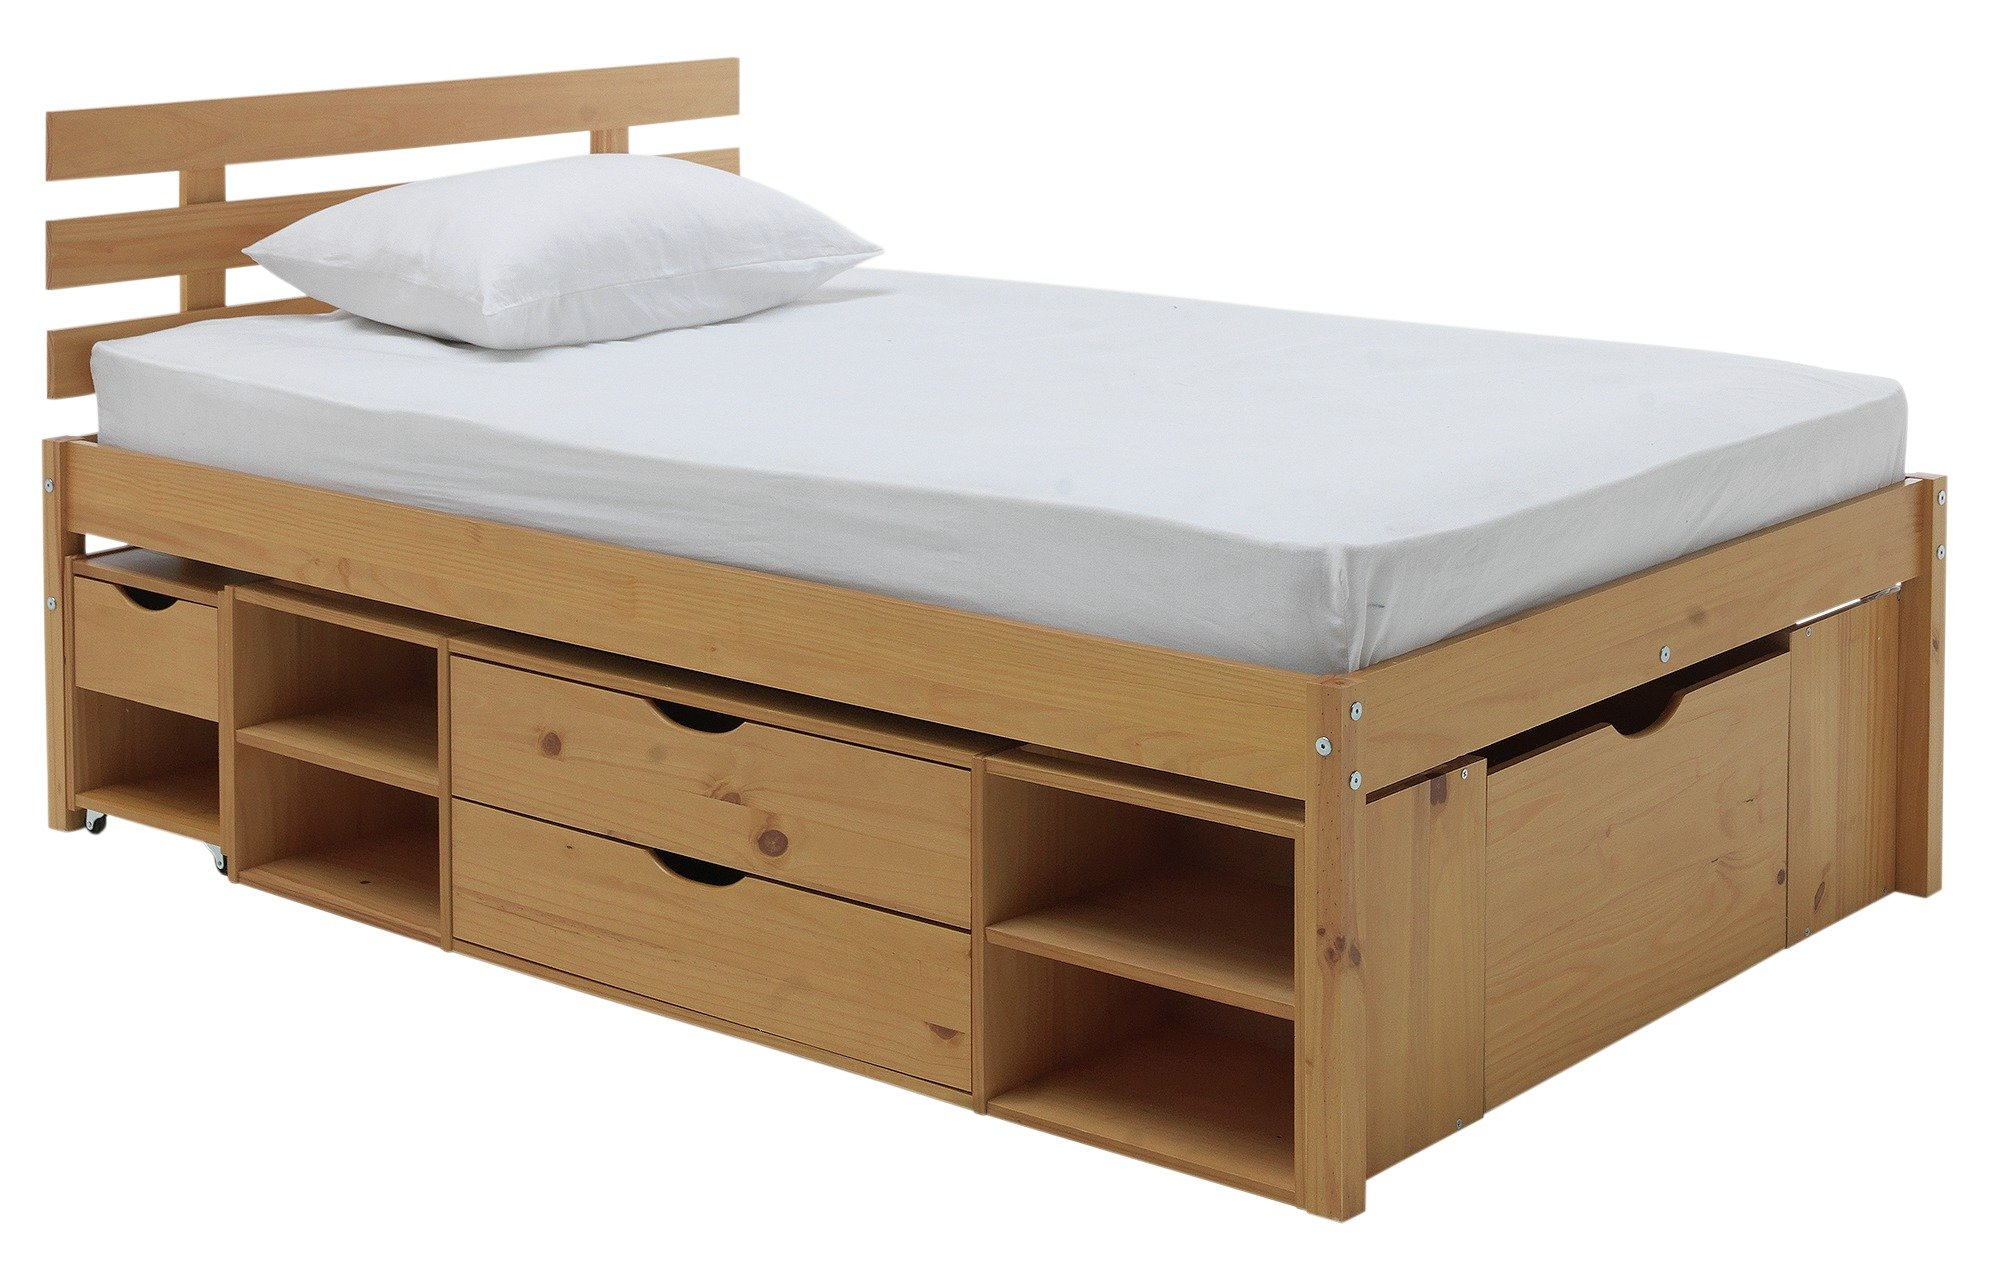 Cozy collection ultimate storage ii double bed frame uidmyqb